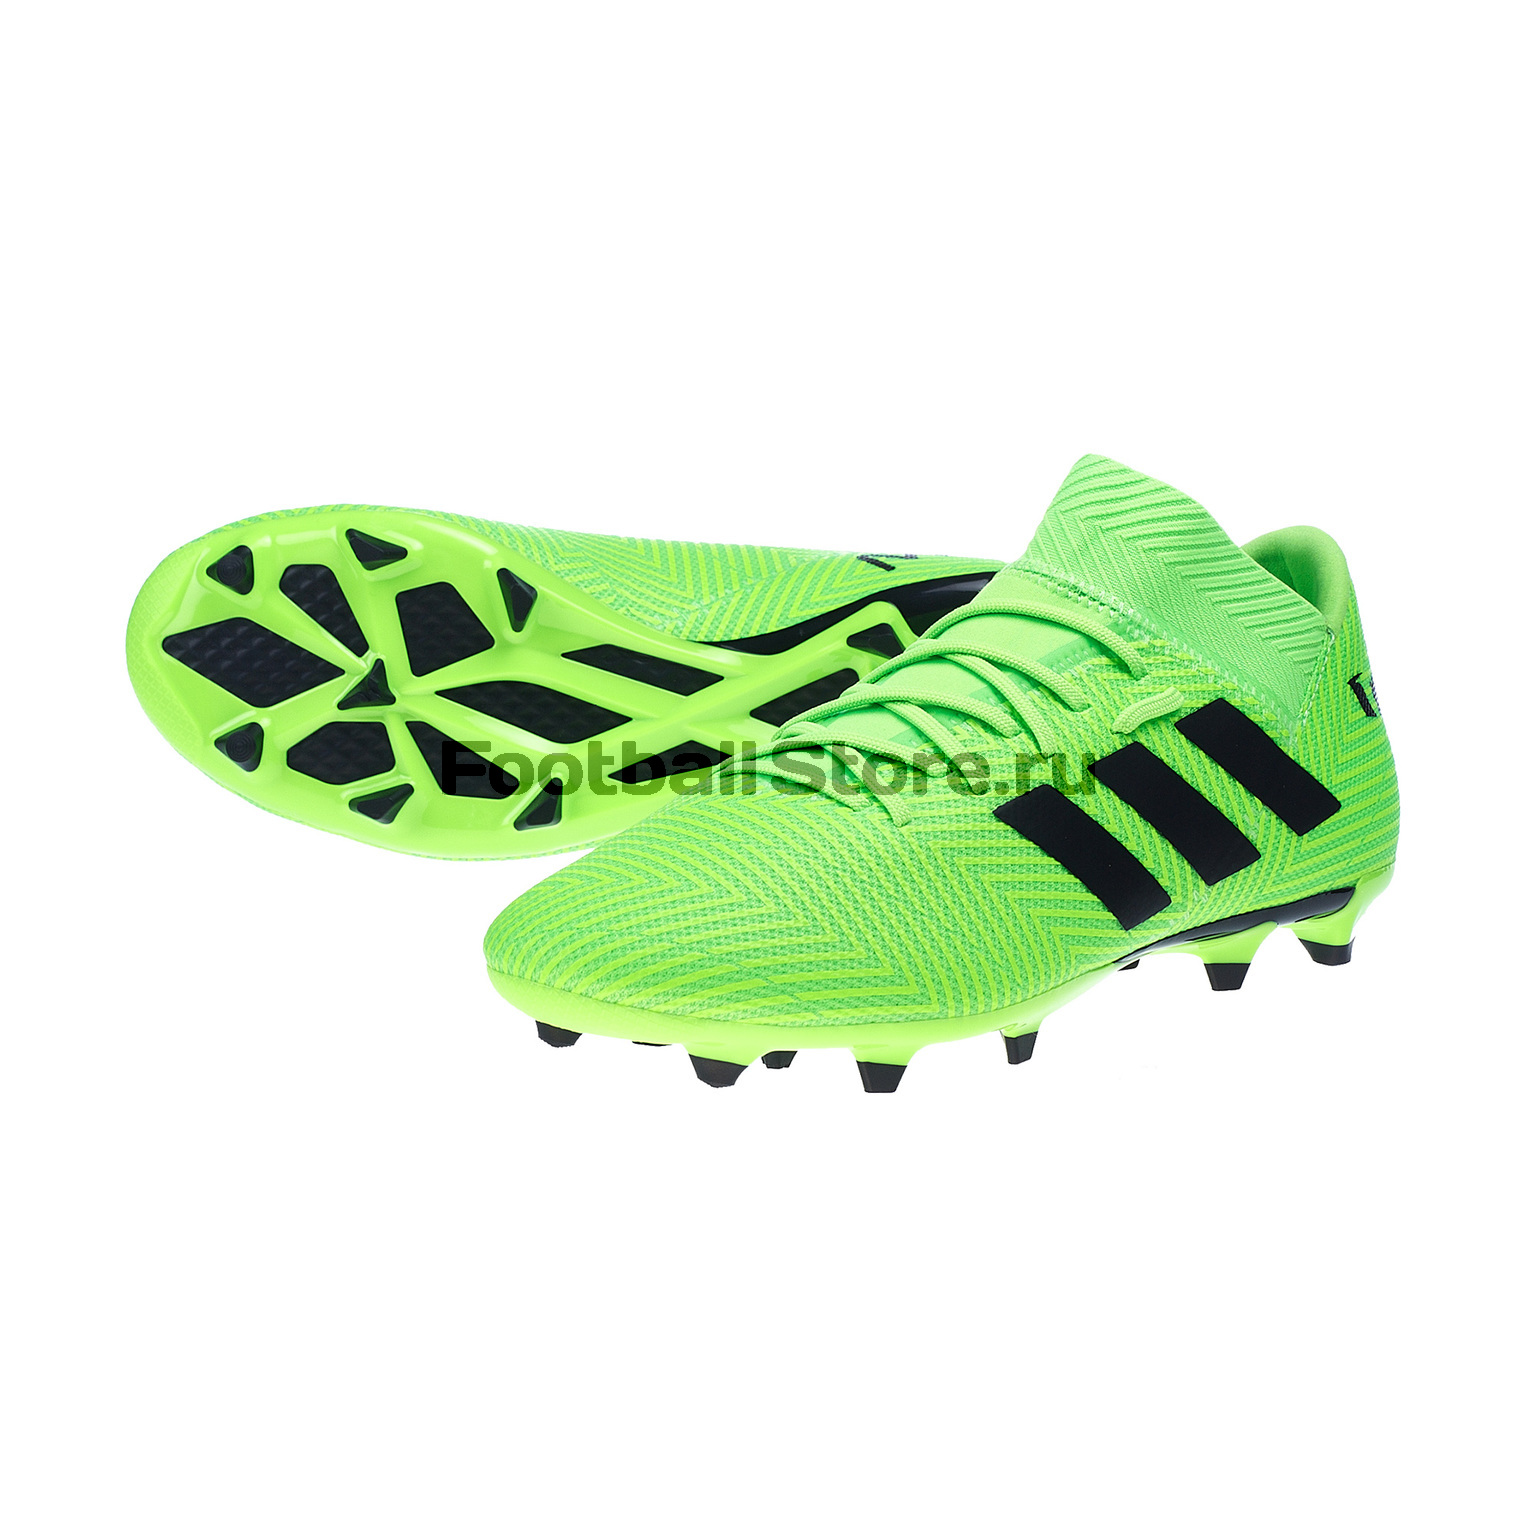 Бутсы Adidas Nemeziz Messi 18.3 FG DB2113 standerd notebook a4 inside page spiral sketch 60 sheets 9 hole filler paper blank white and kraft paper and school supplies